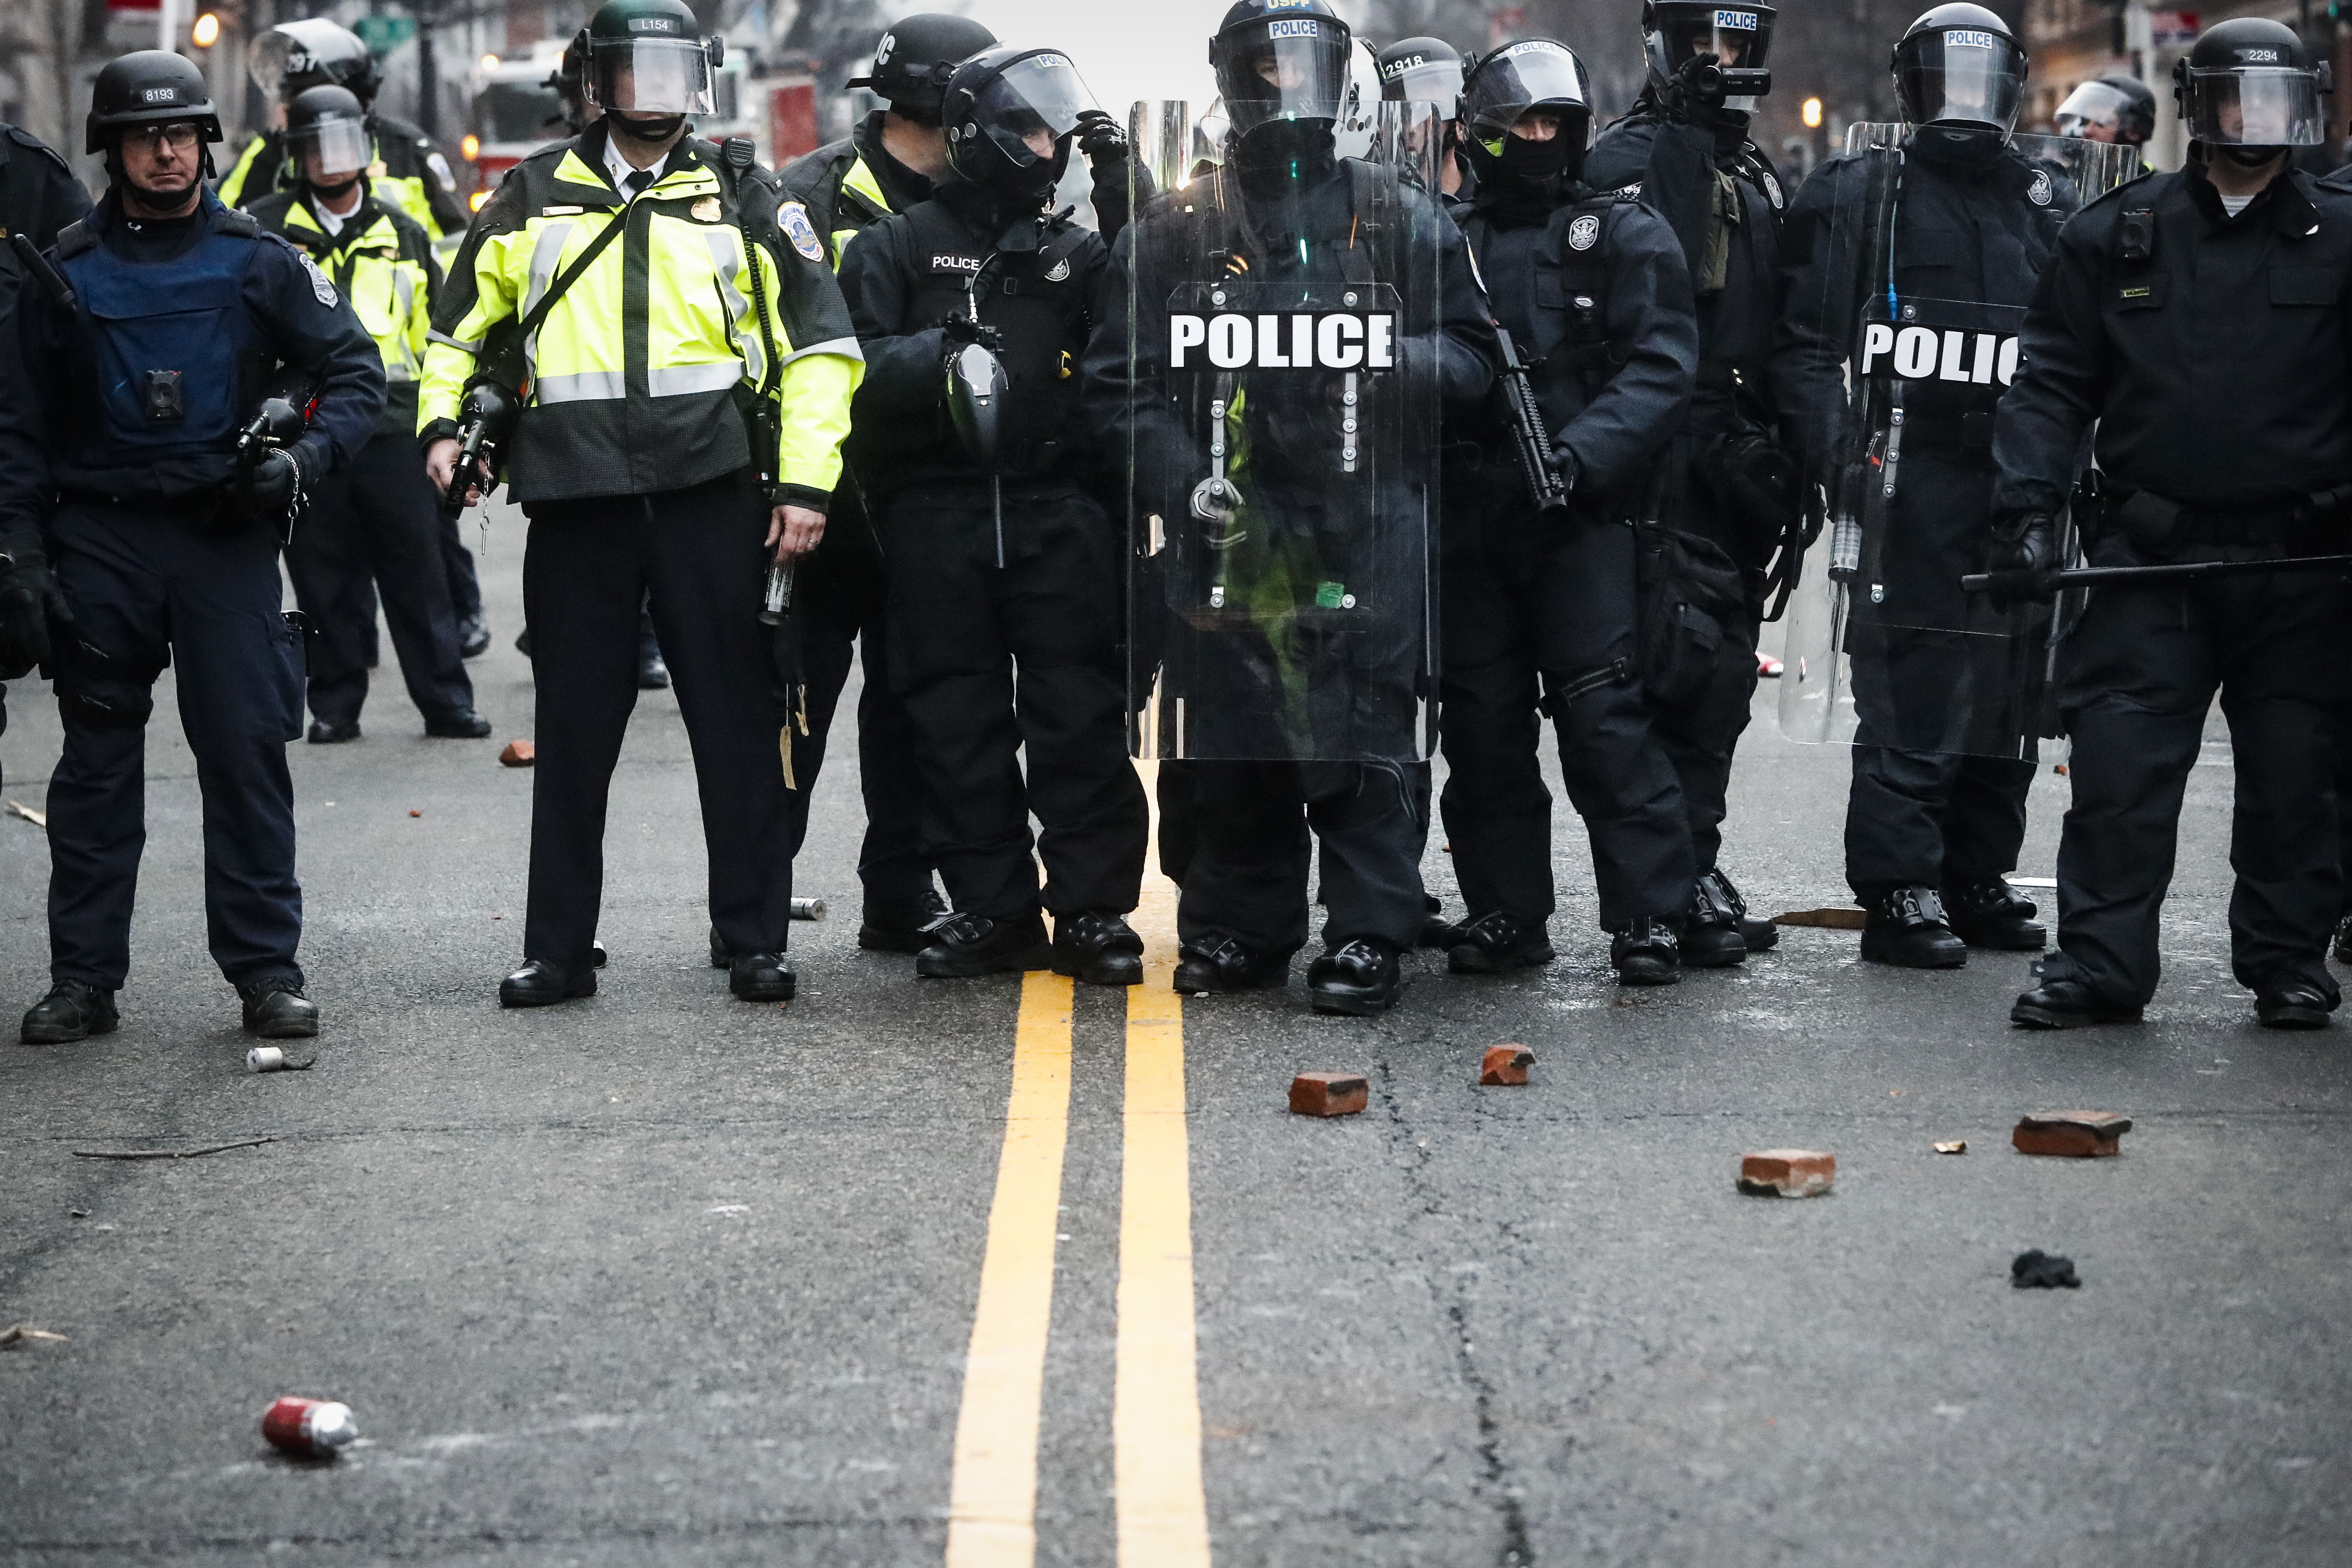 Bricks thrown by protestors rest at the feet of police officers during a demonstration after the inauguration of President Donald Trump in Washington on Jan. 20, 2017. (AP Photo/John Minchillo)